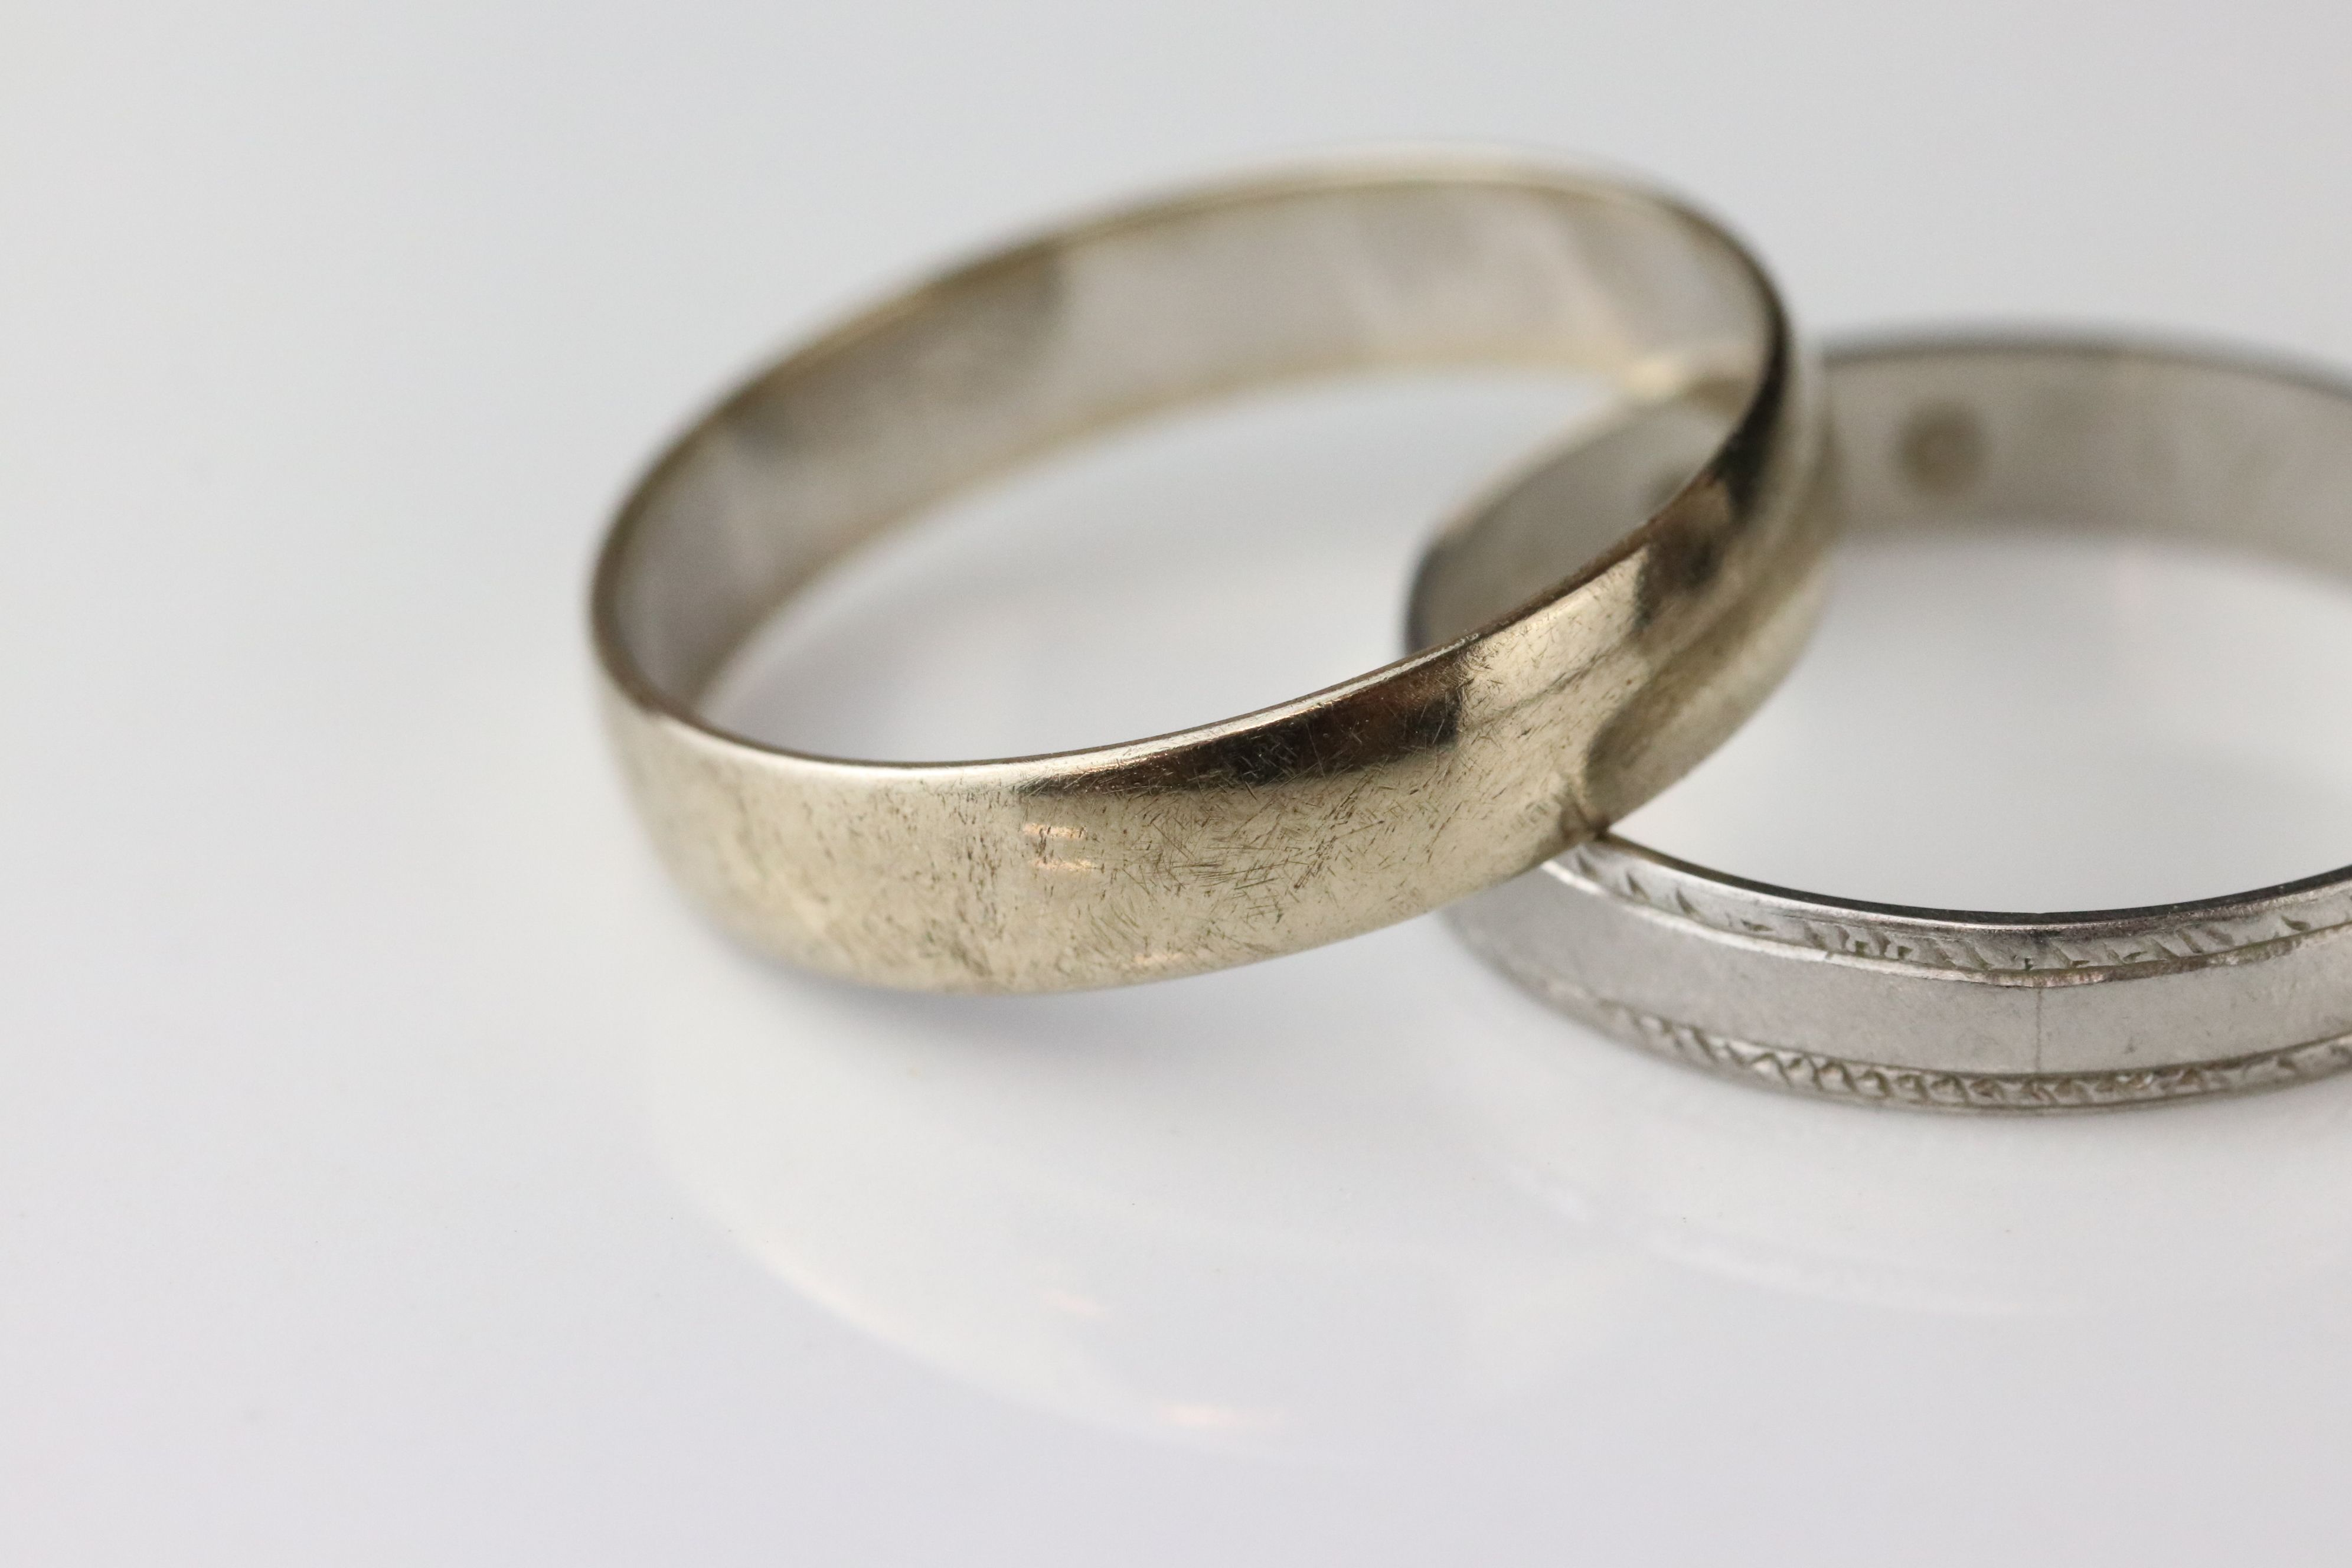 9ct white gold plain polished wedding band, width approx 4mm, ring size R (needs rhodium plating) - Image 3 of 5